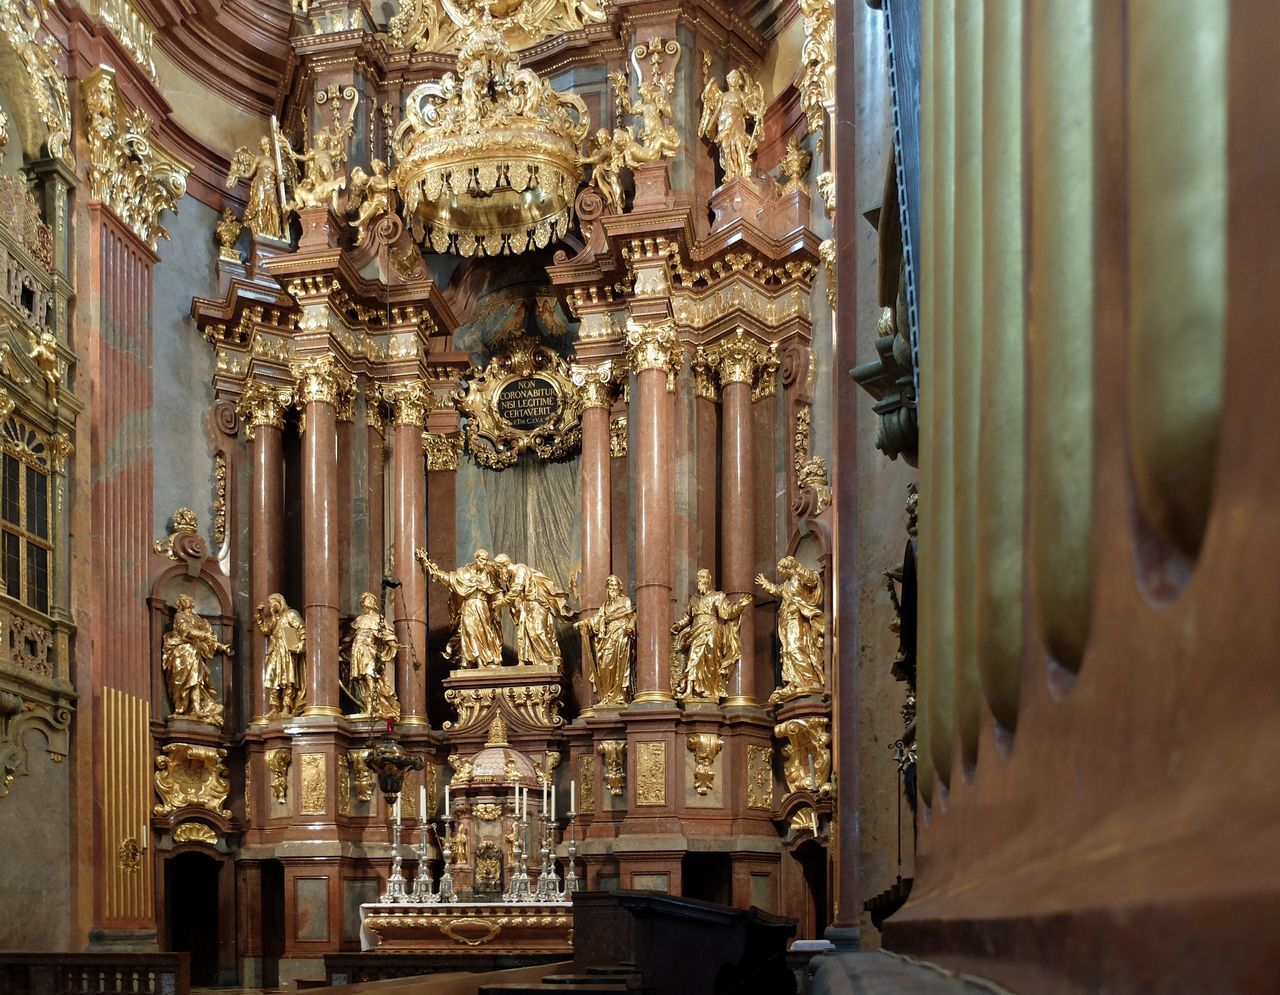 Altar Church Melk Day Gold Colored Indoors  Klioster Melk Melancholic Landscapes No People Place Of Worship Religion Sculpture Spirituality Statue STIFT MELK Wealth